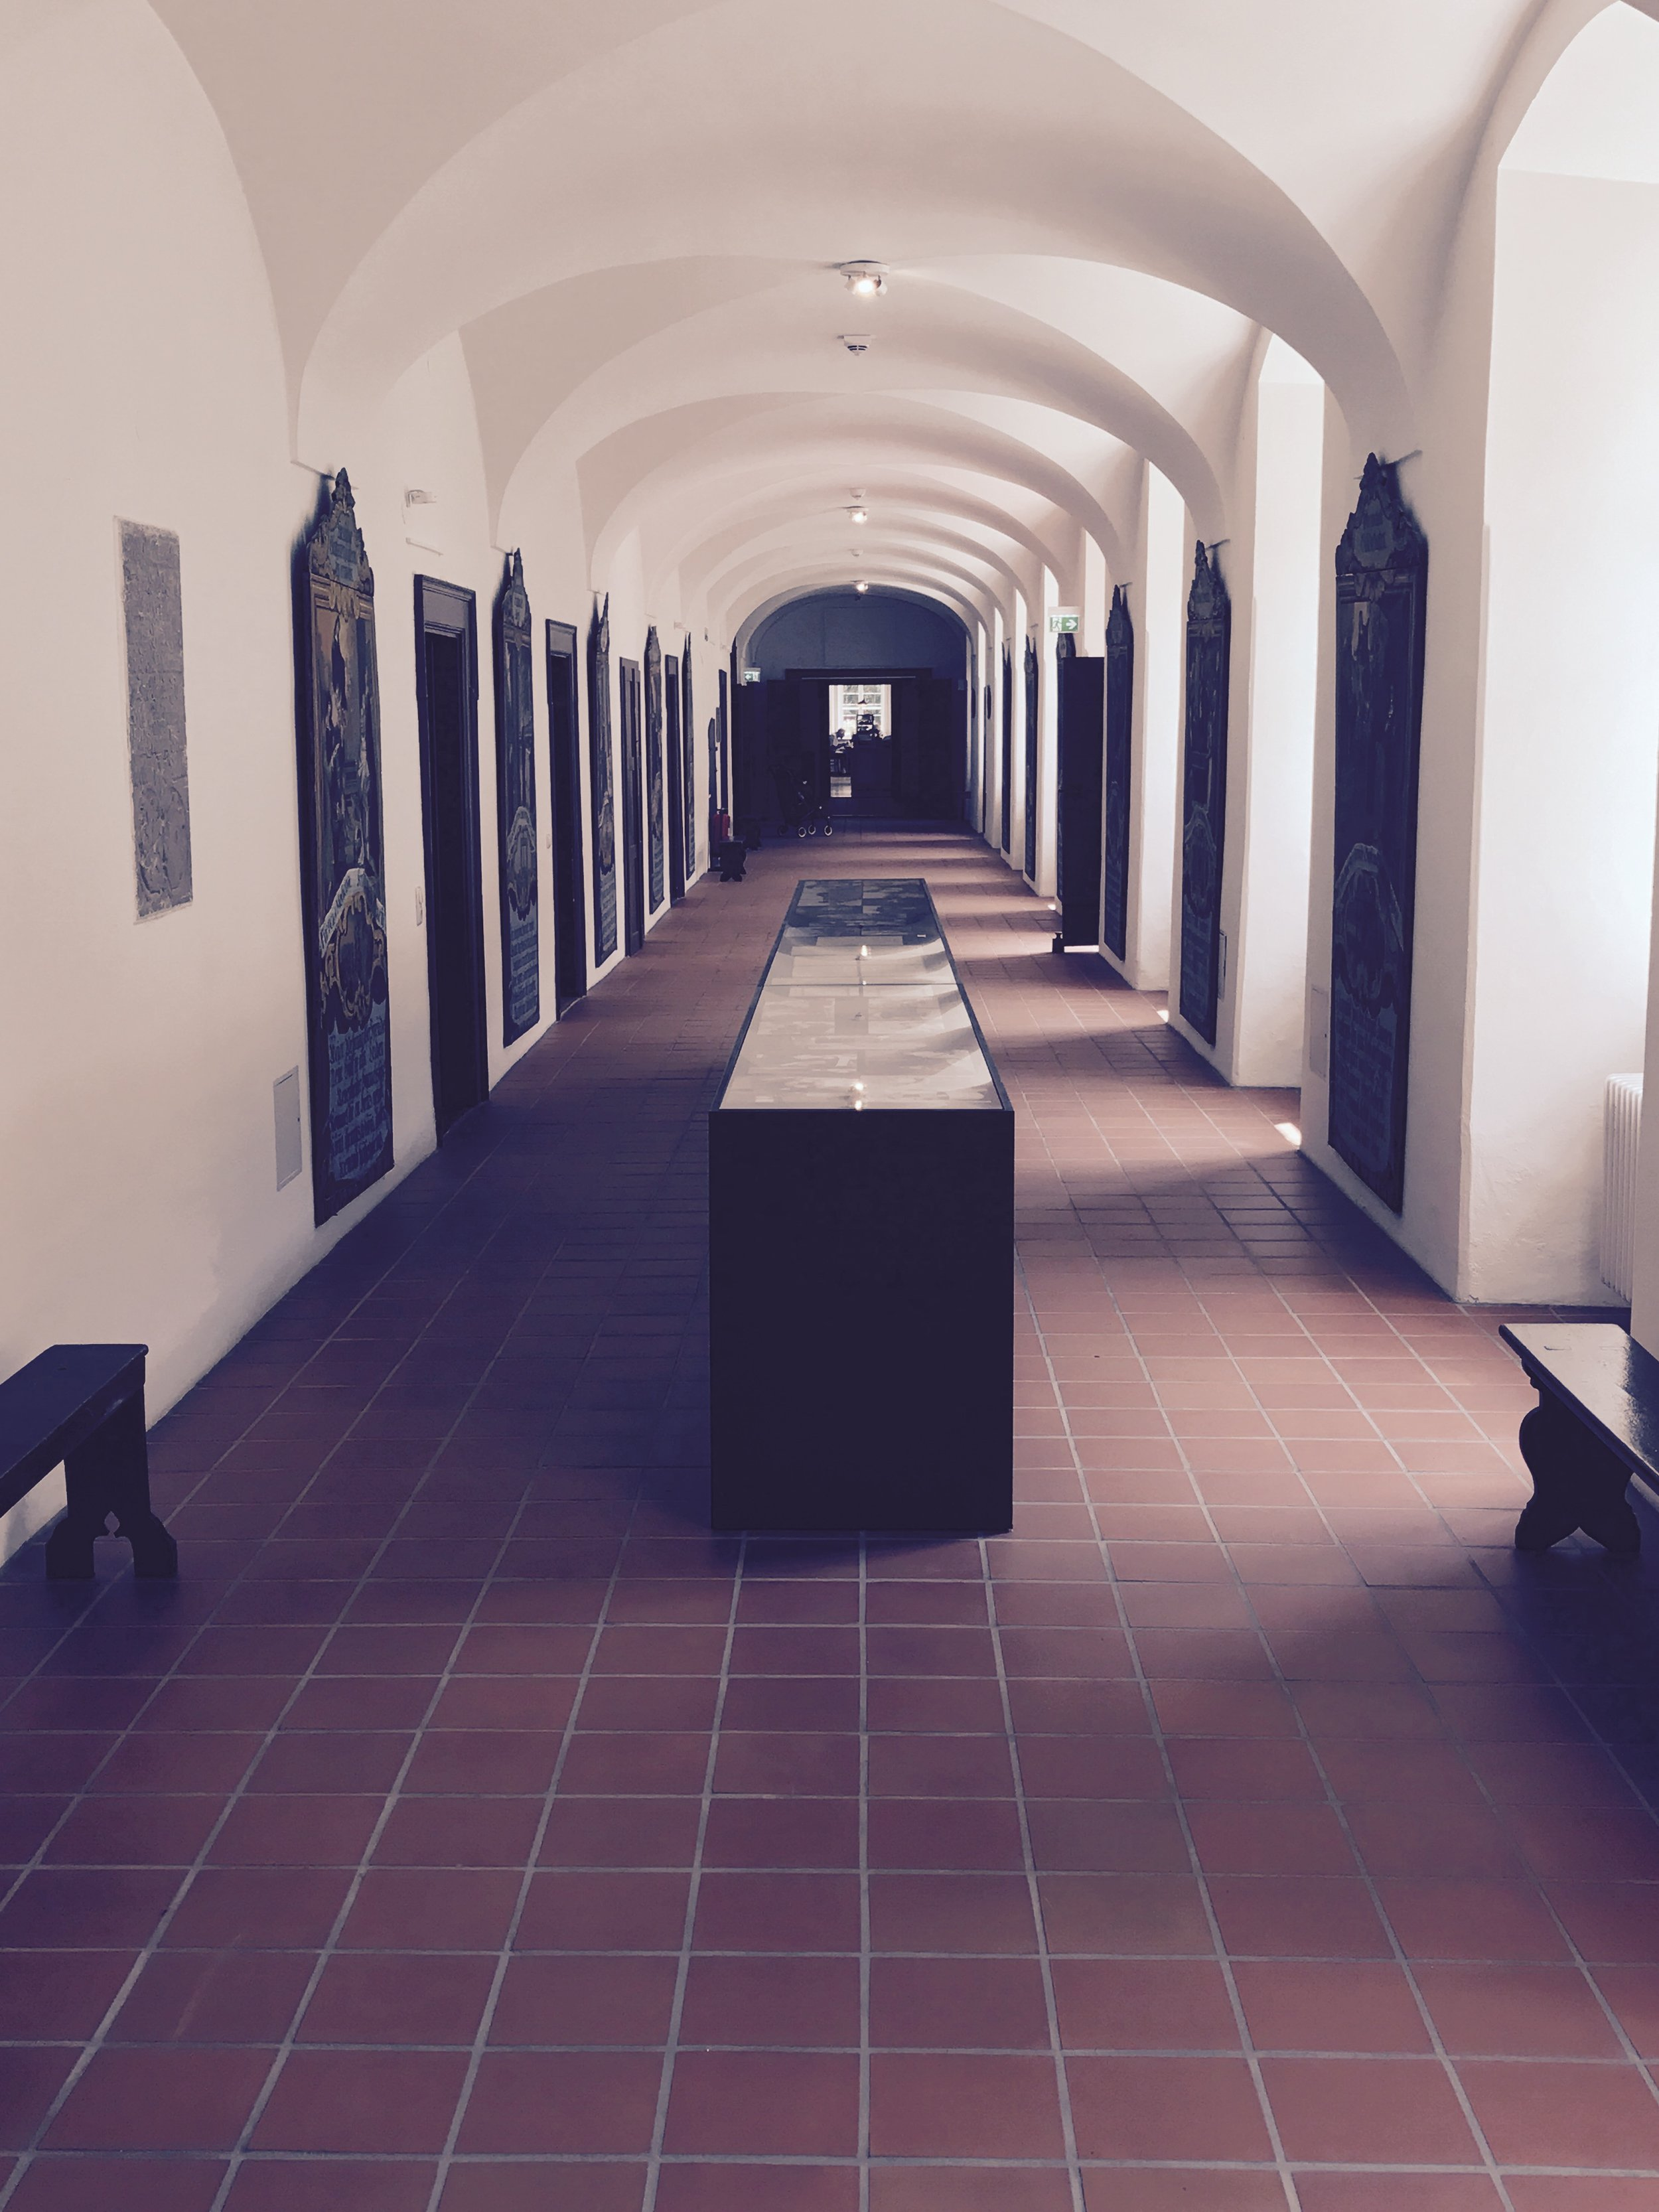 one of the long hall-ways surrounding the inner courtyard